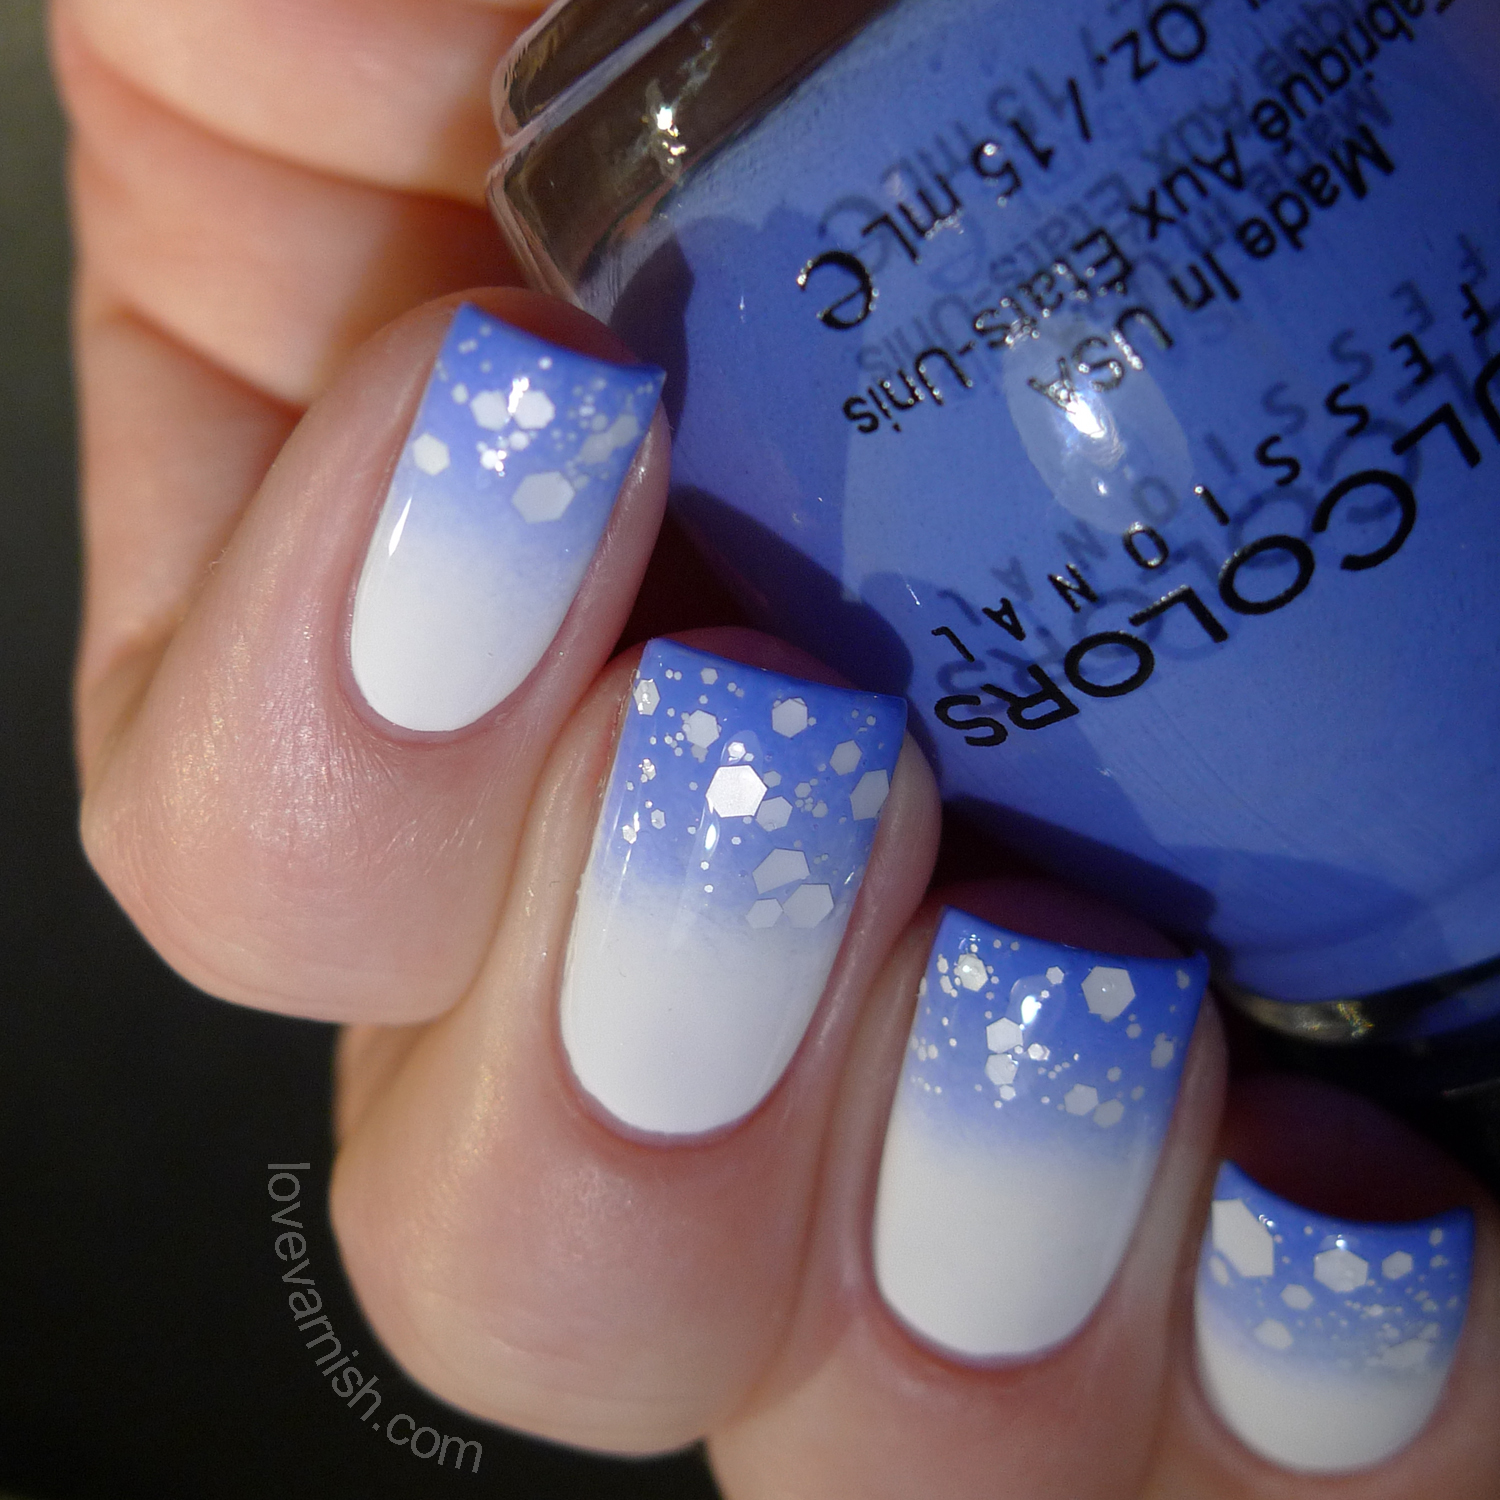 Nailart using Sinful Colors Blue La La